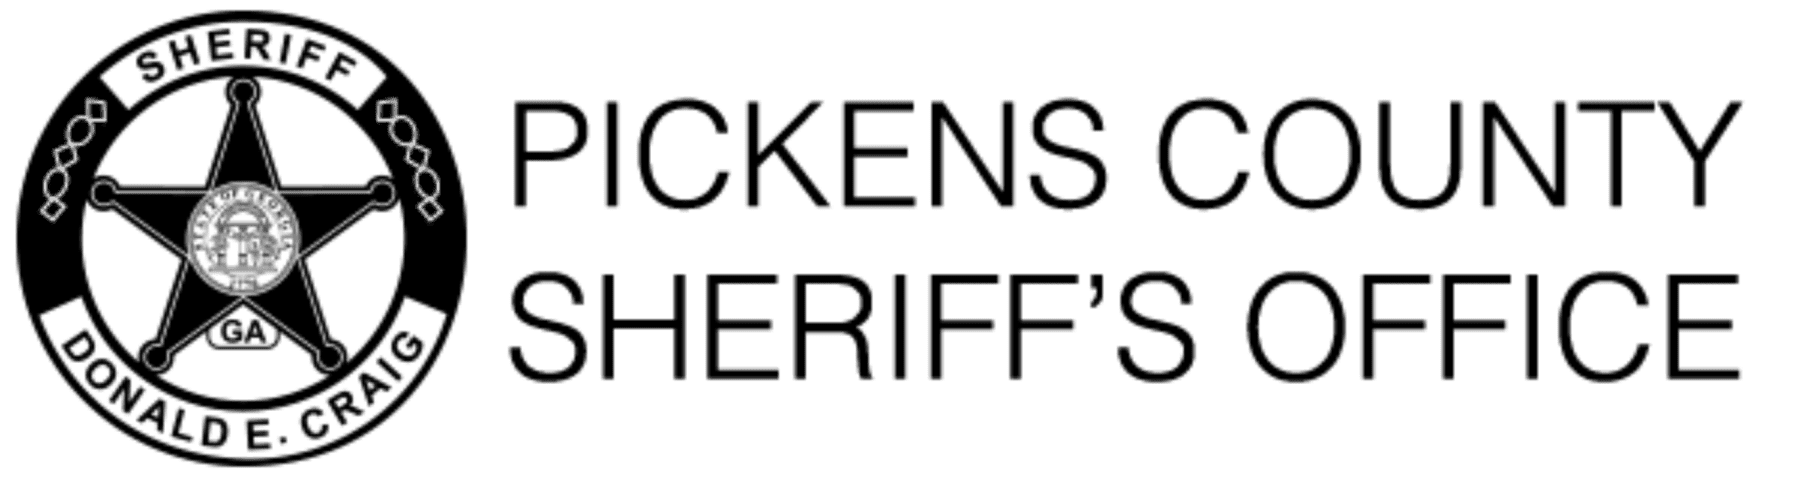 pickens county sheriff